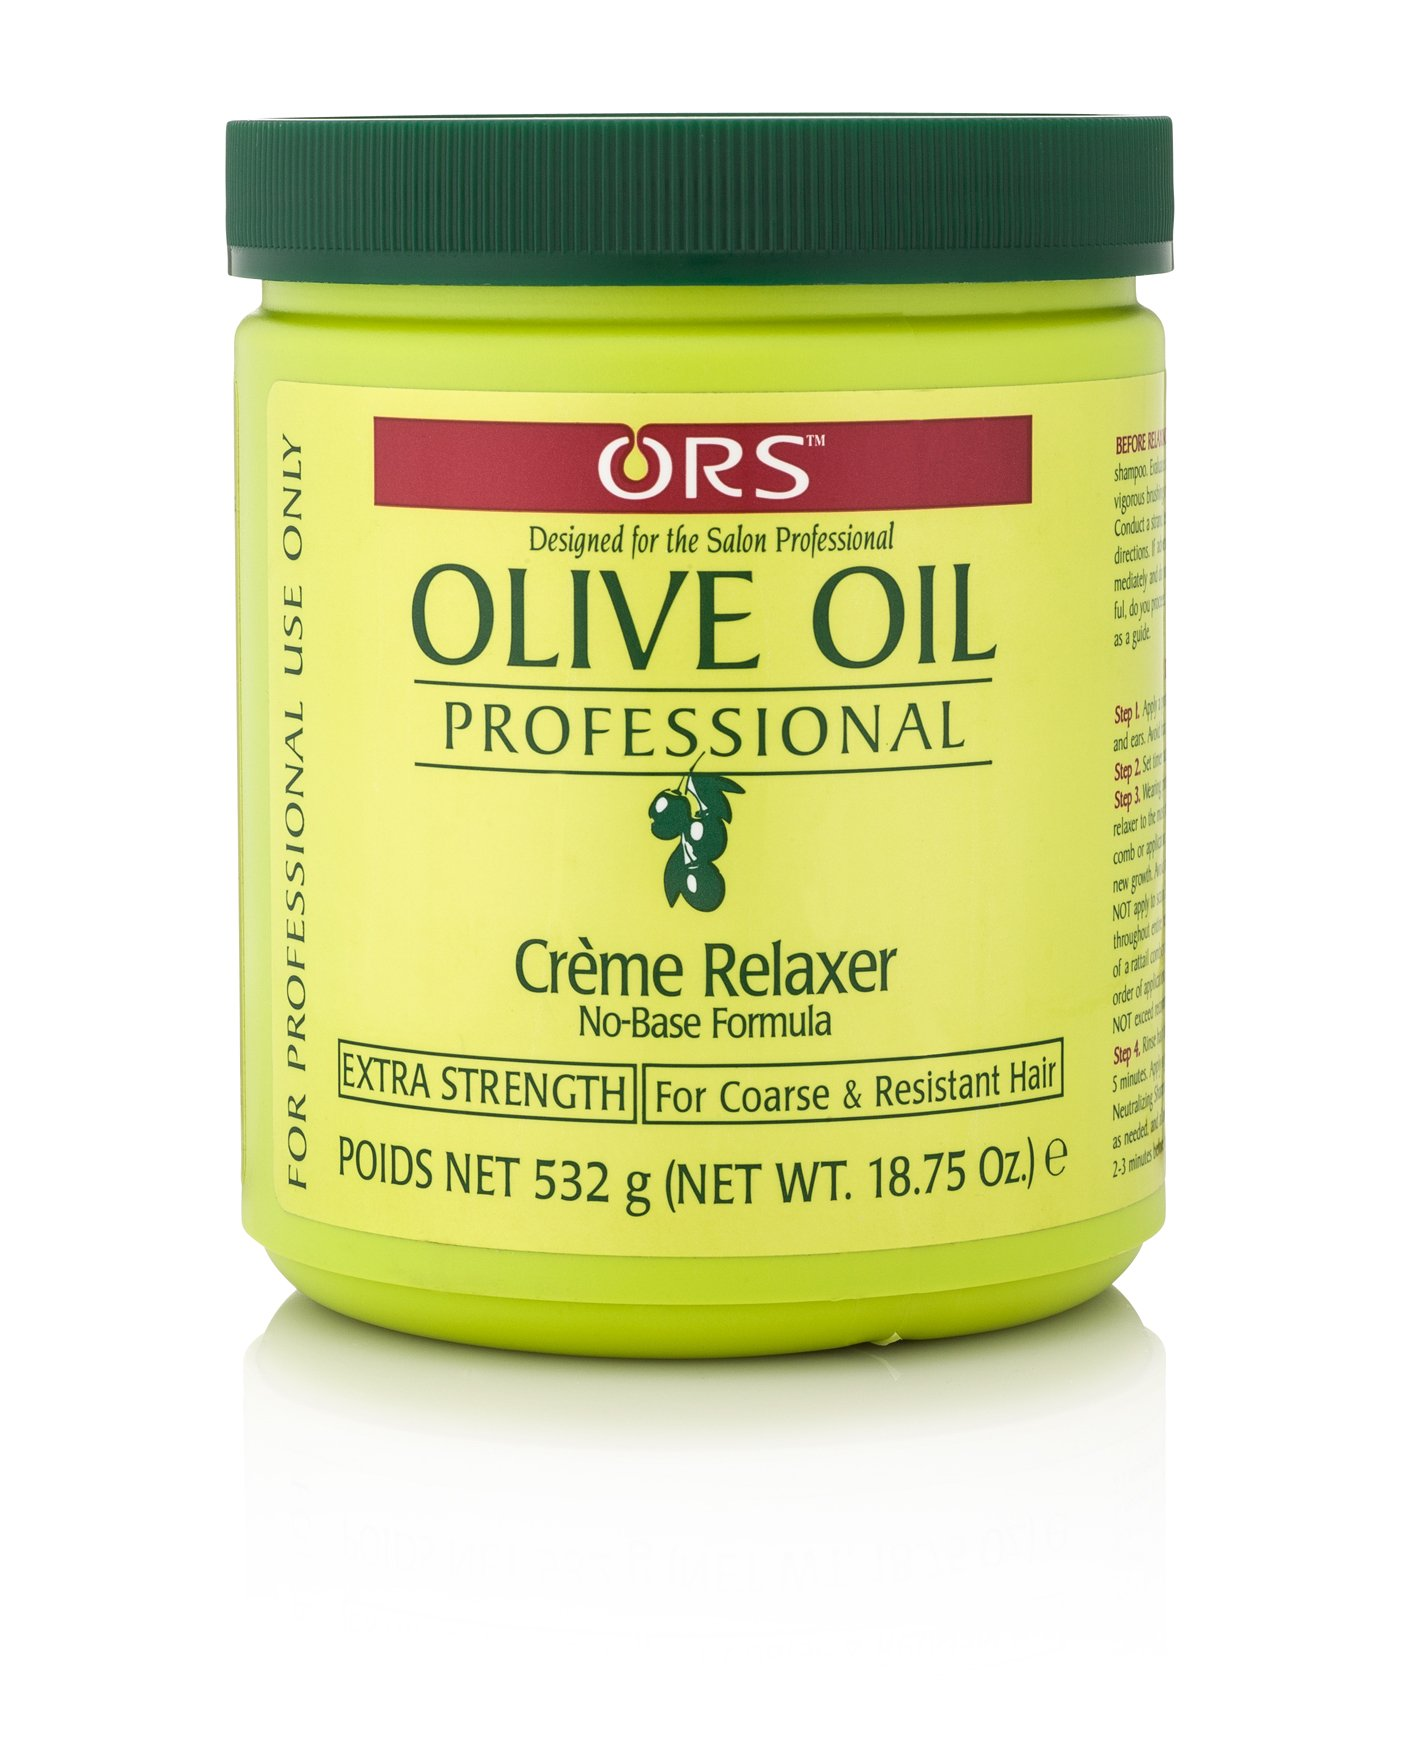 ORS Olive Oil Professional Creme Relaxer Extra Strength 18.75 Ounce (Pack of 1) by ORS